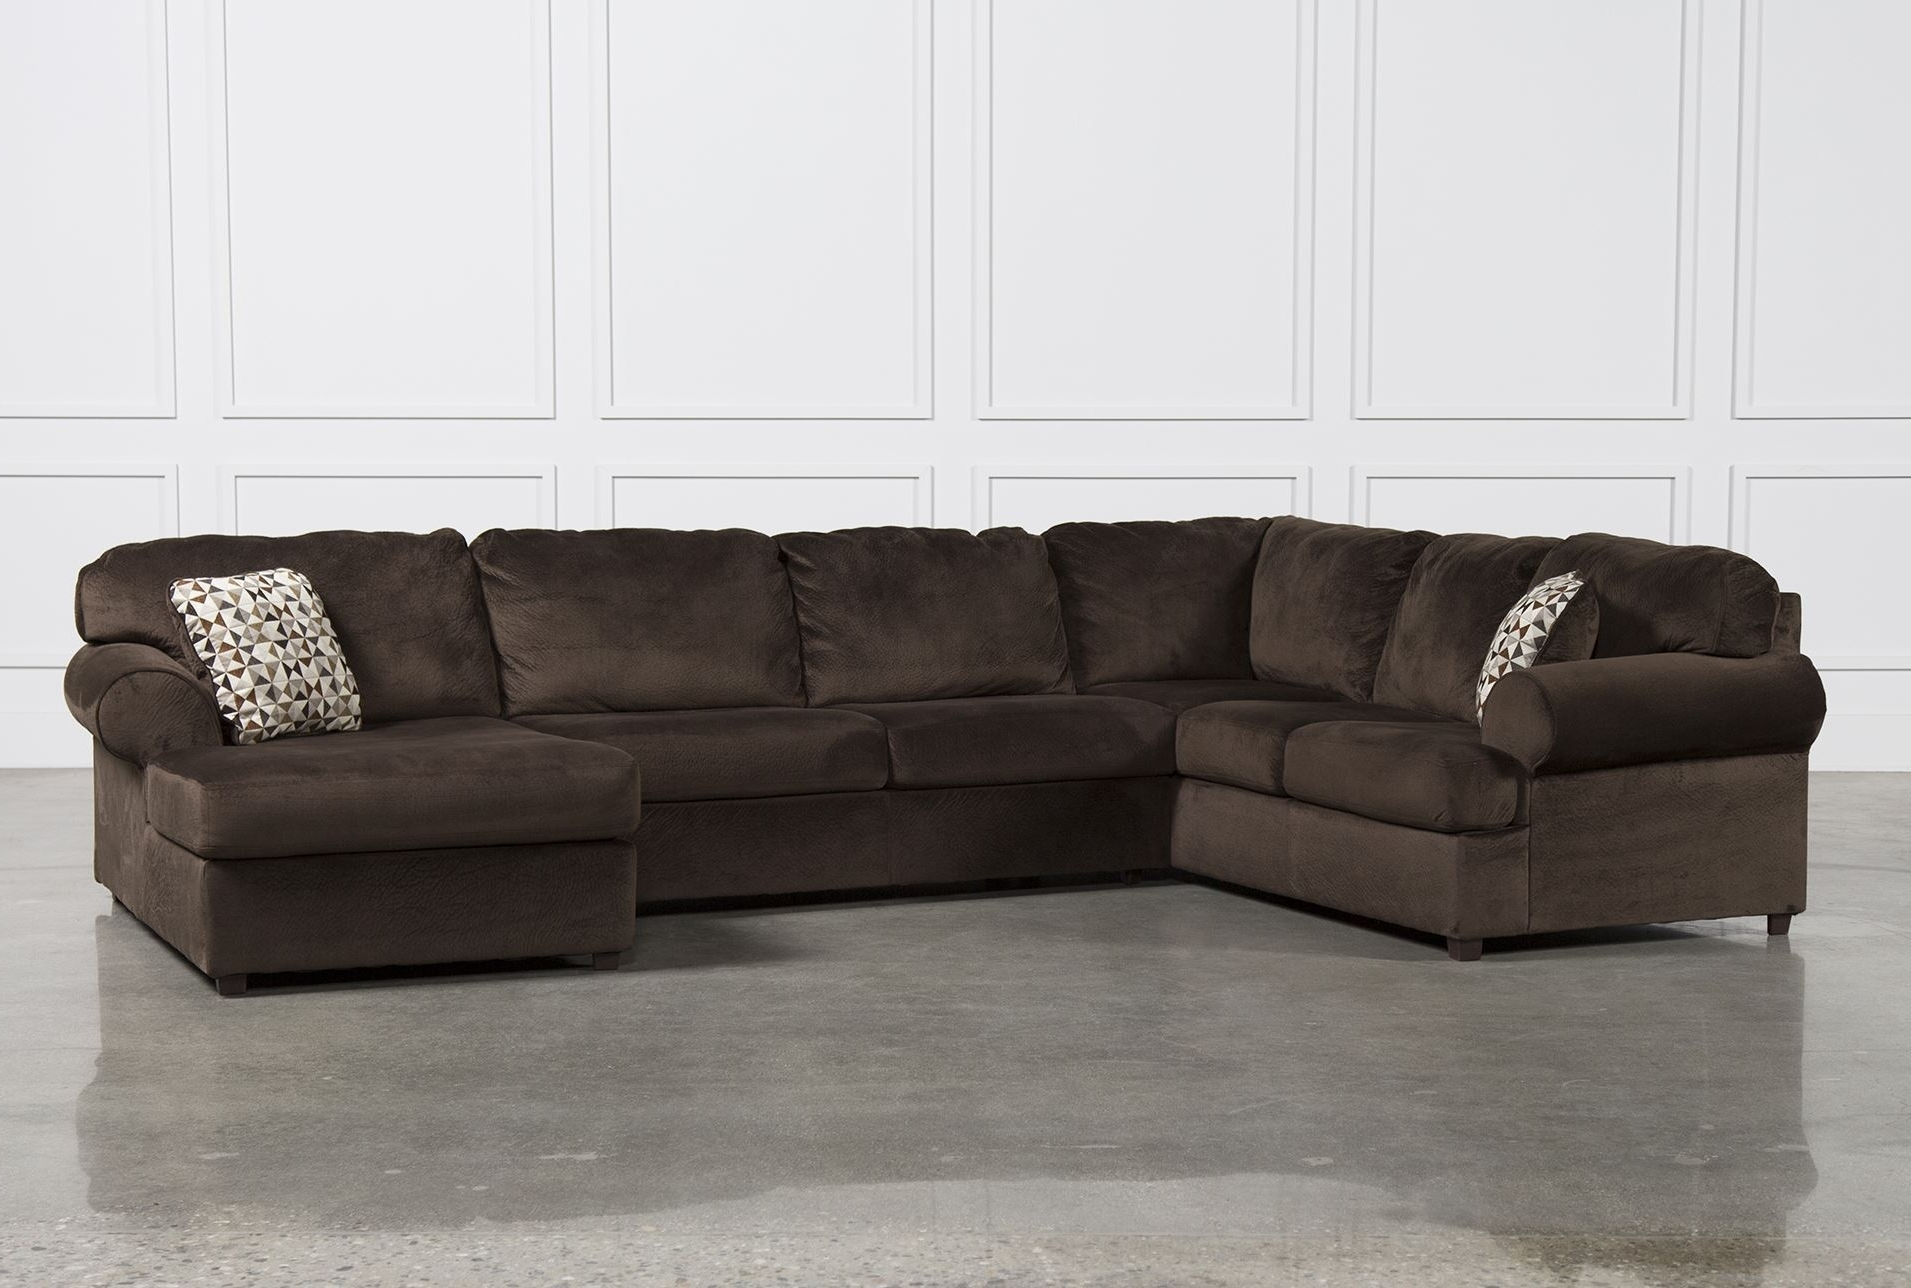 Jane Bi Sectional Sofa Regarding Most Recently Released Victoria Bc Sectional Sofas (View 10 of 20)